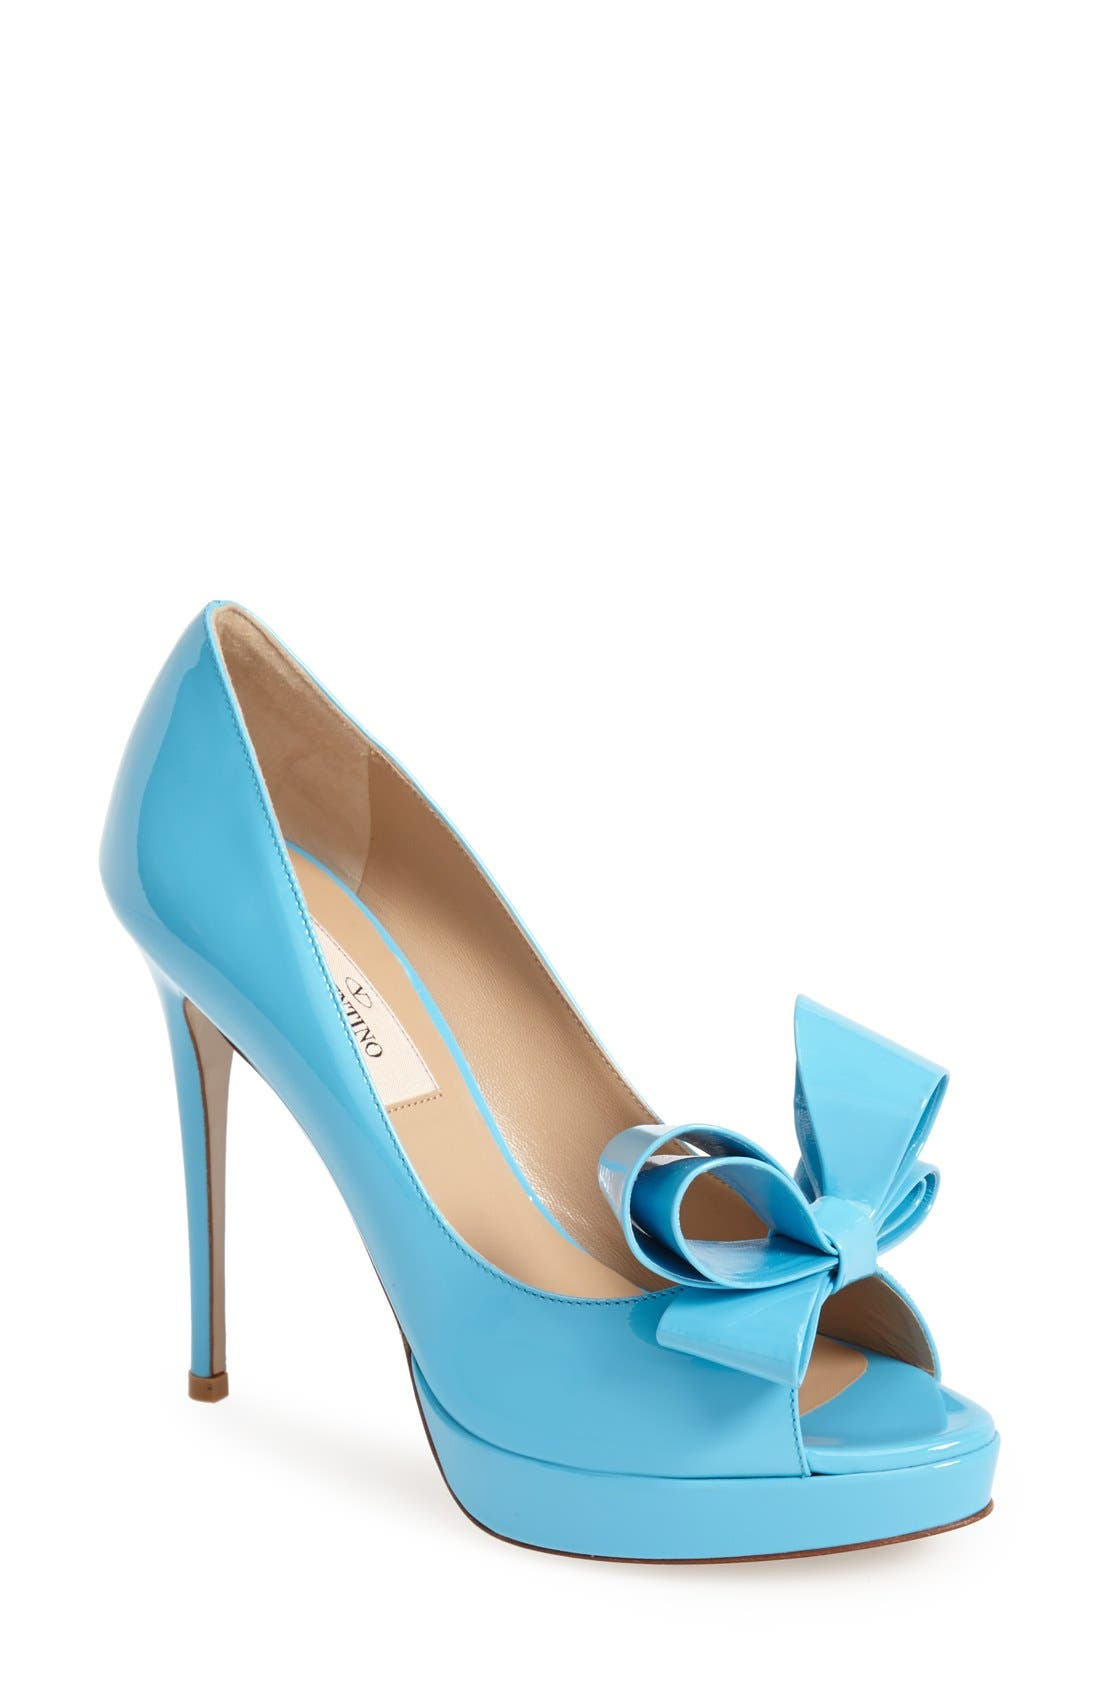 Main Image - Valentino 'Couture' Patent Leather Platform Pump (Women)